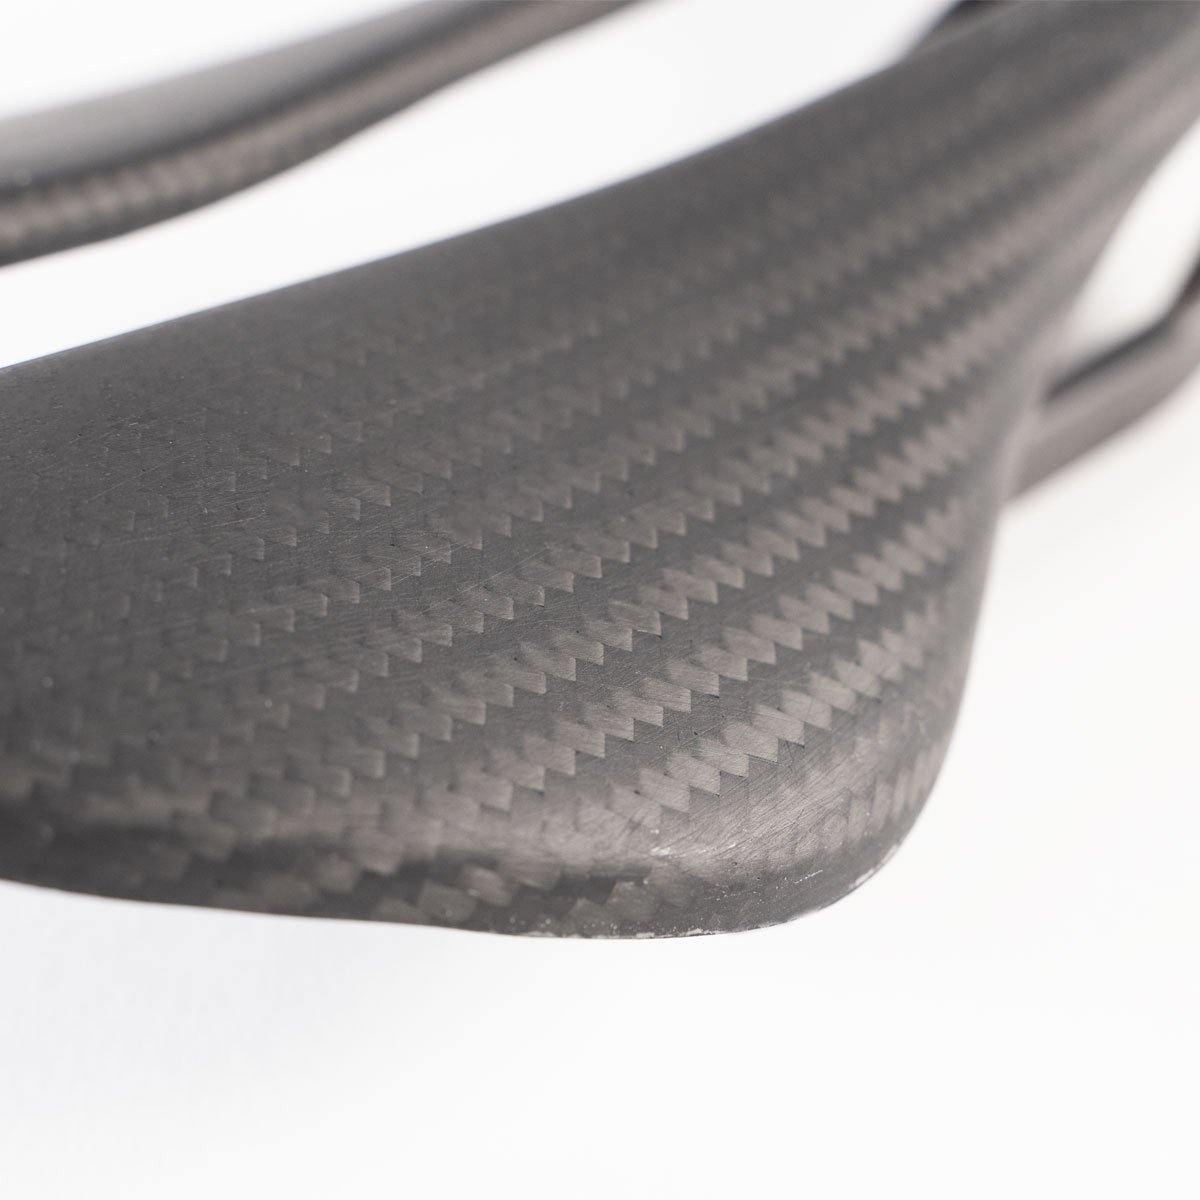 SADDLE GARDENA ALPITUDE COMPONENTS IN CARBON